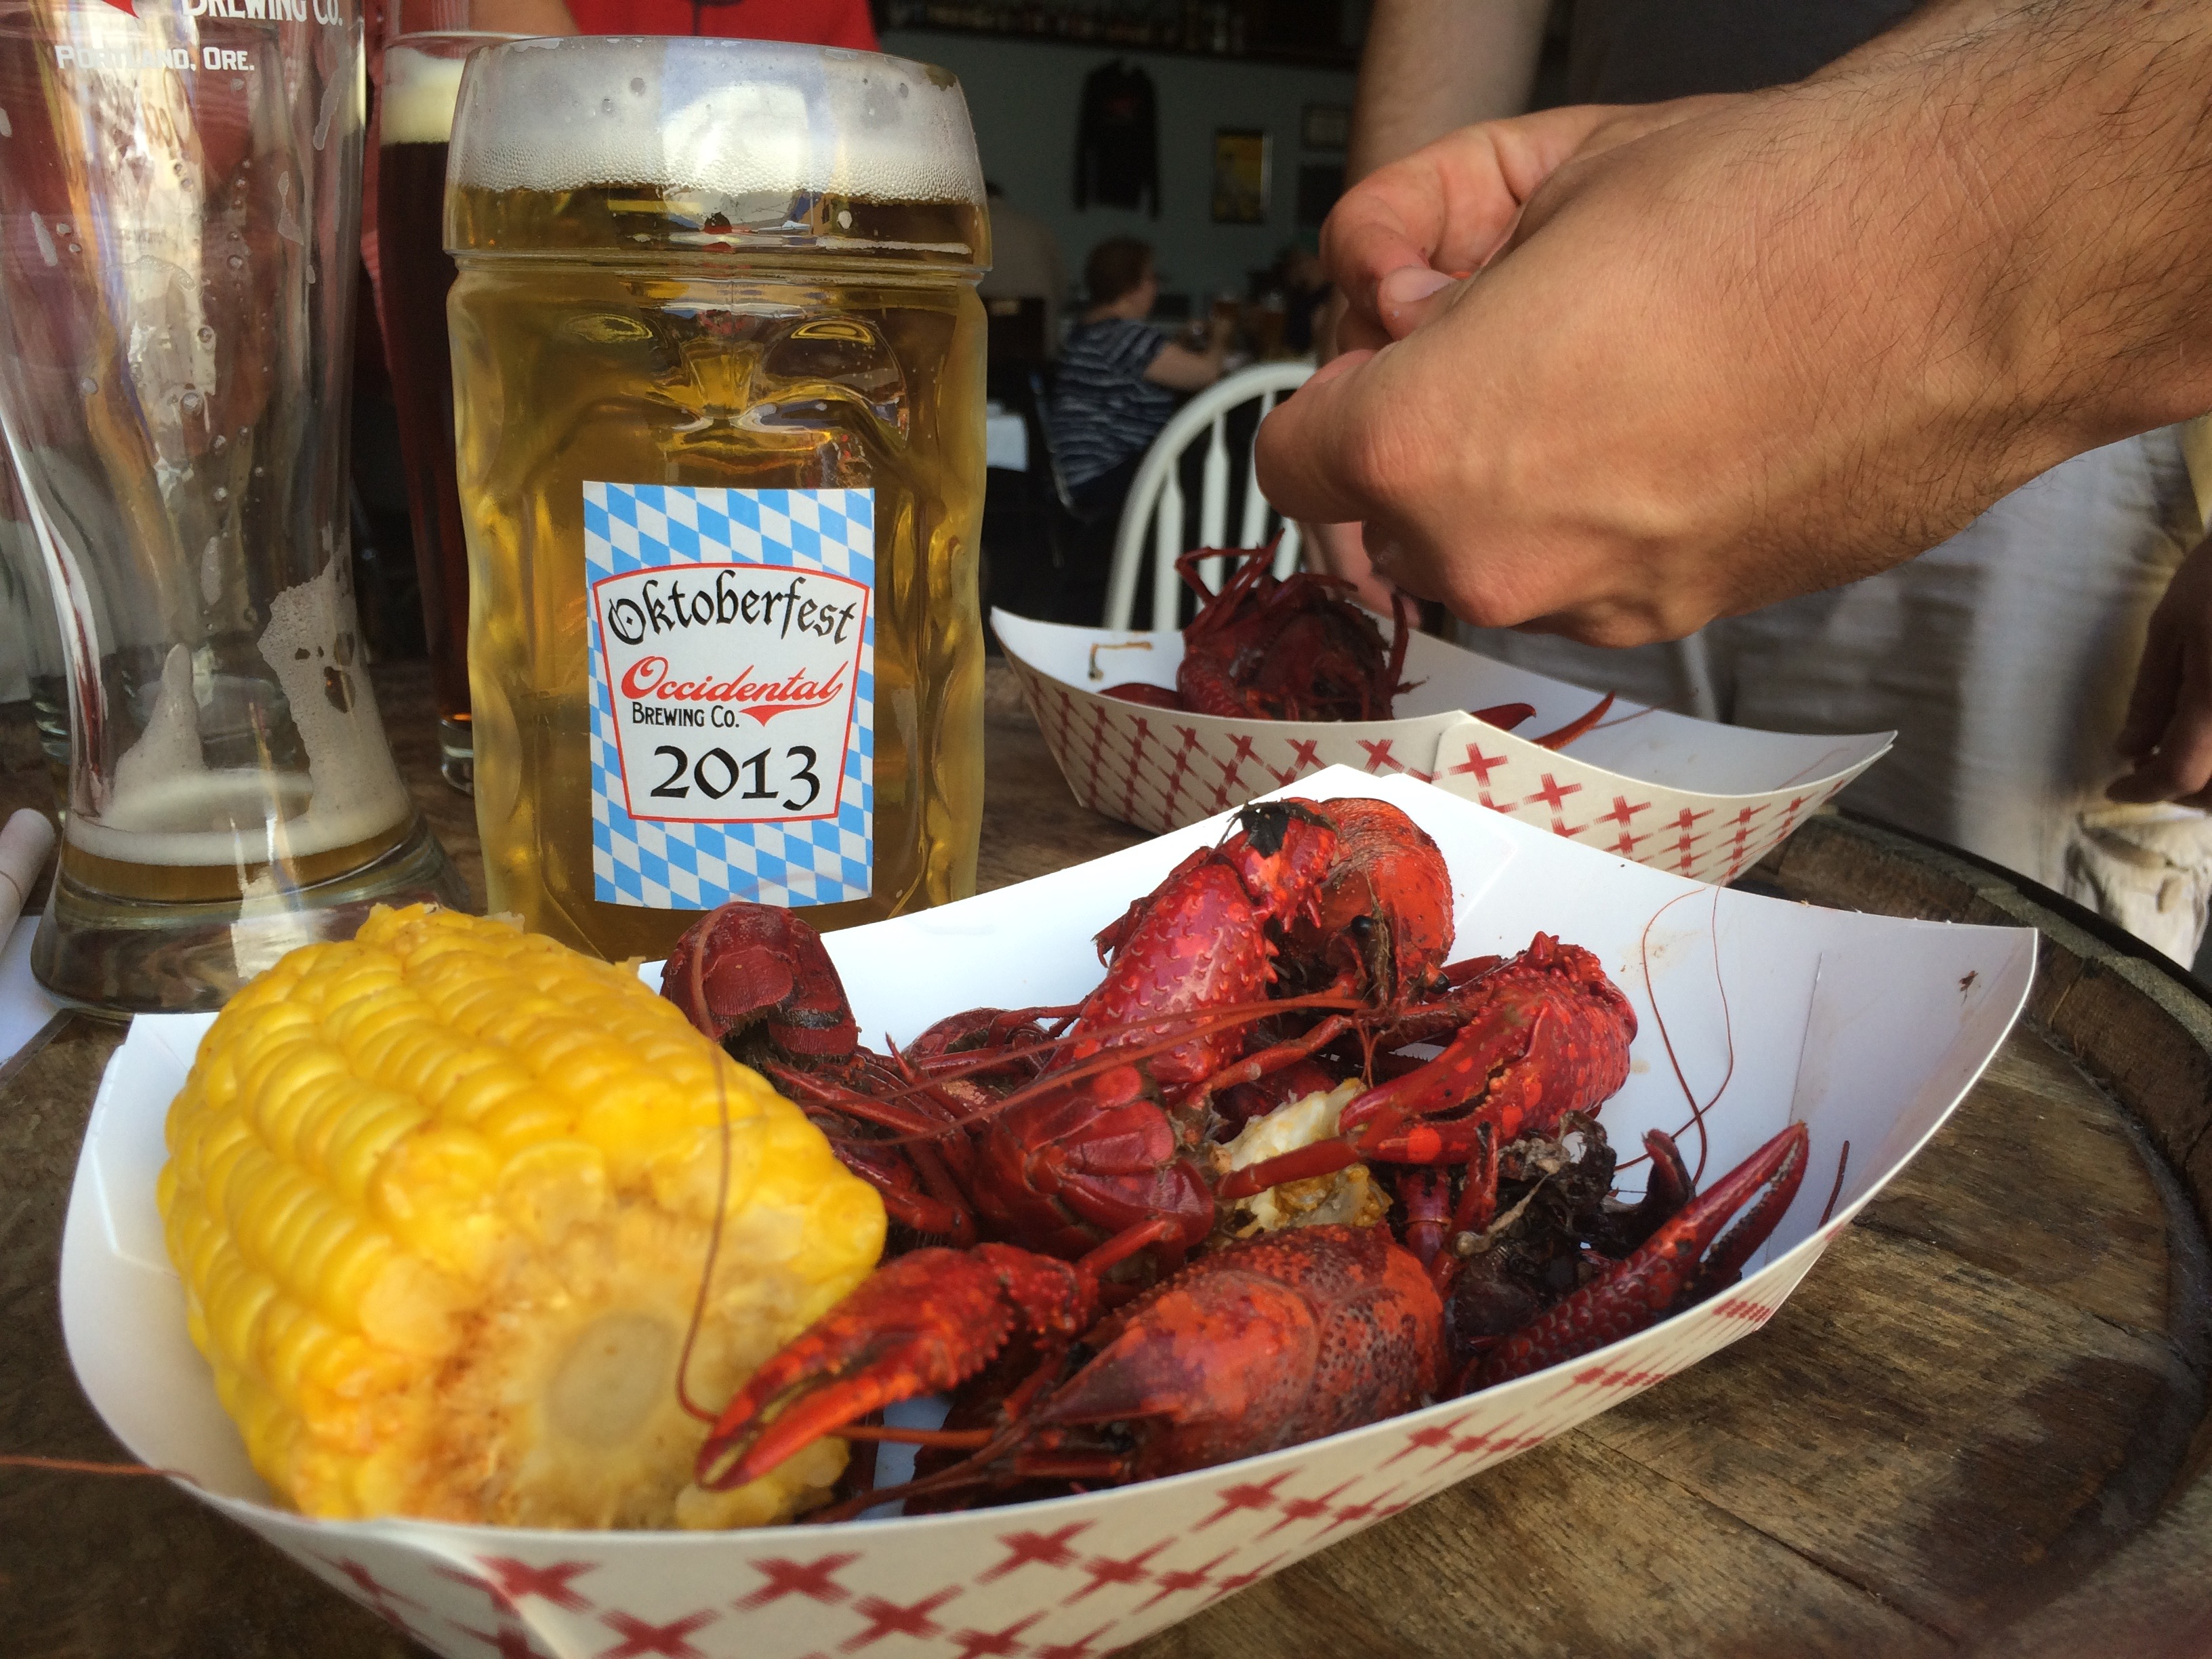 Occidental Brewing Crawfish Boil and a German-style Pilsner.